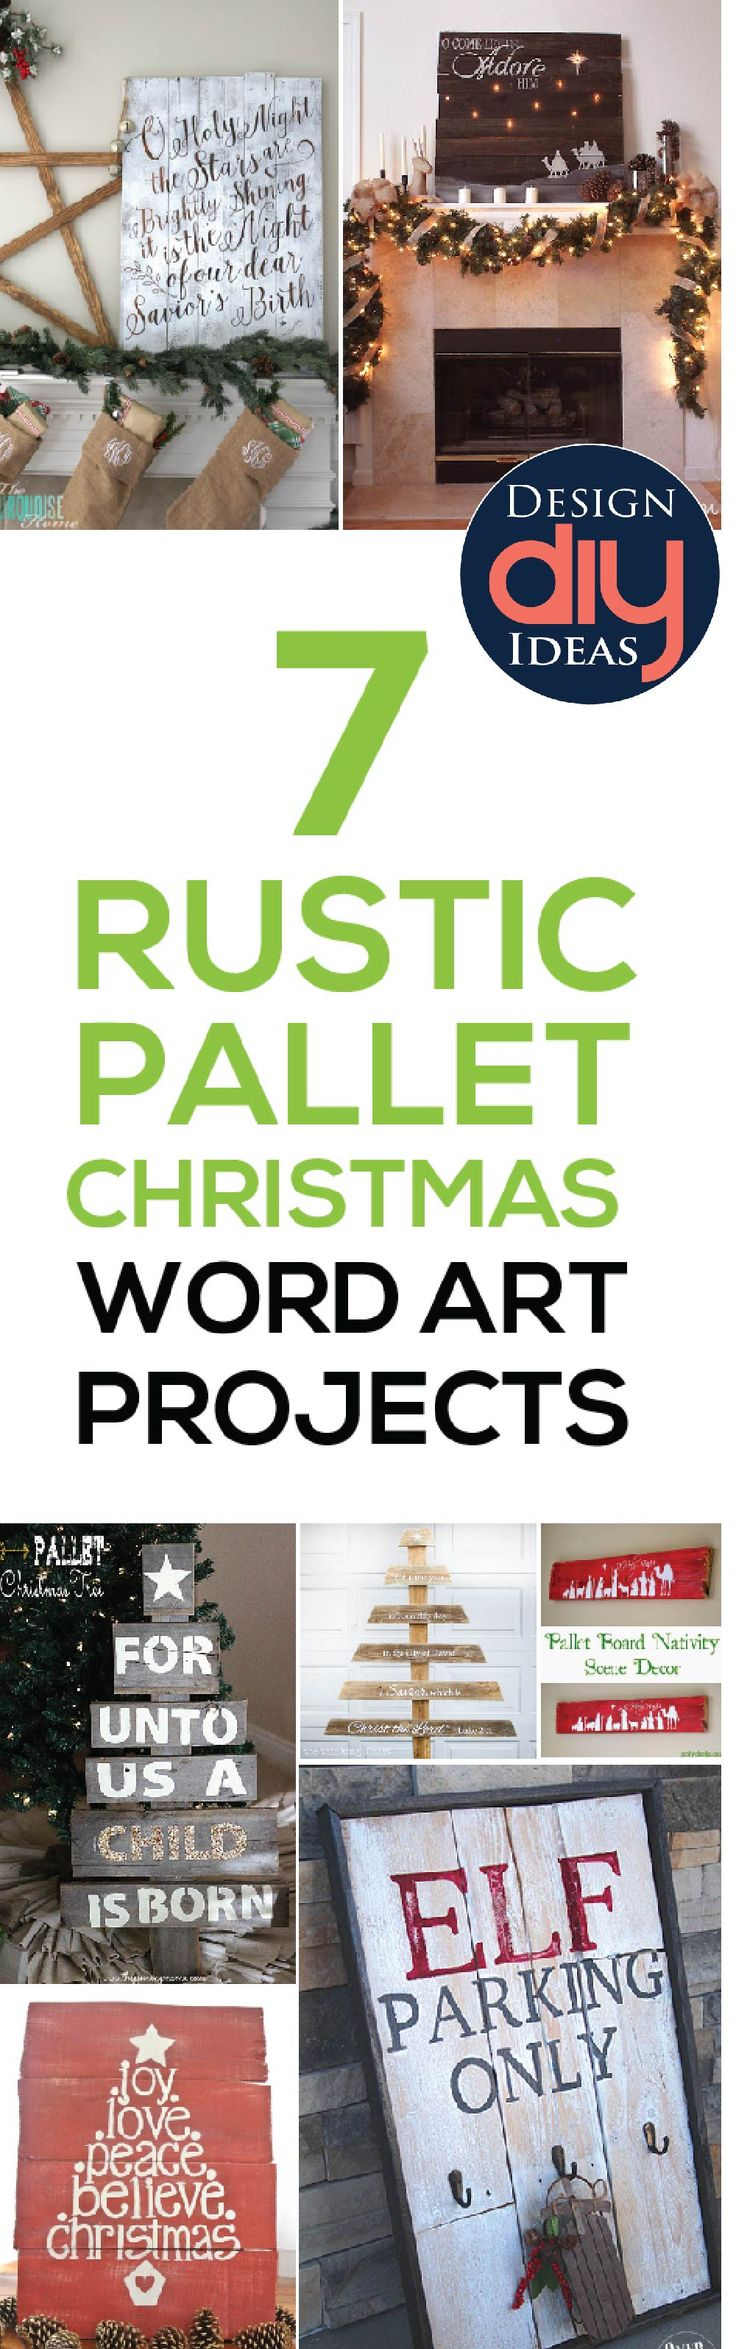 Cheap easy way to bring rustic Christmas decor into your home? Word art!